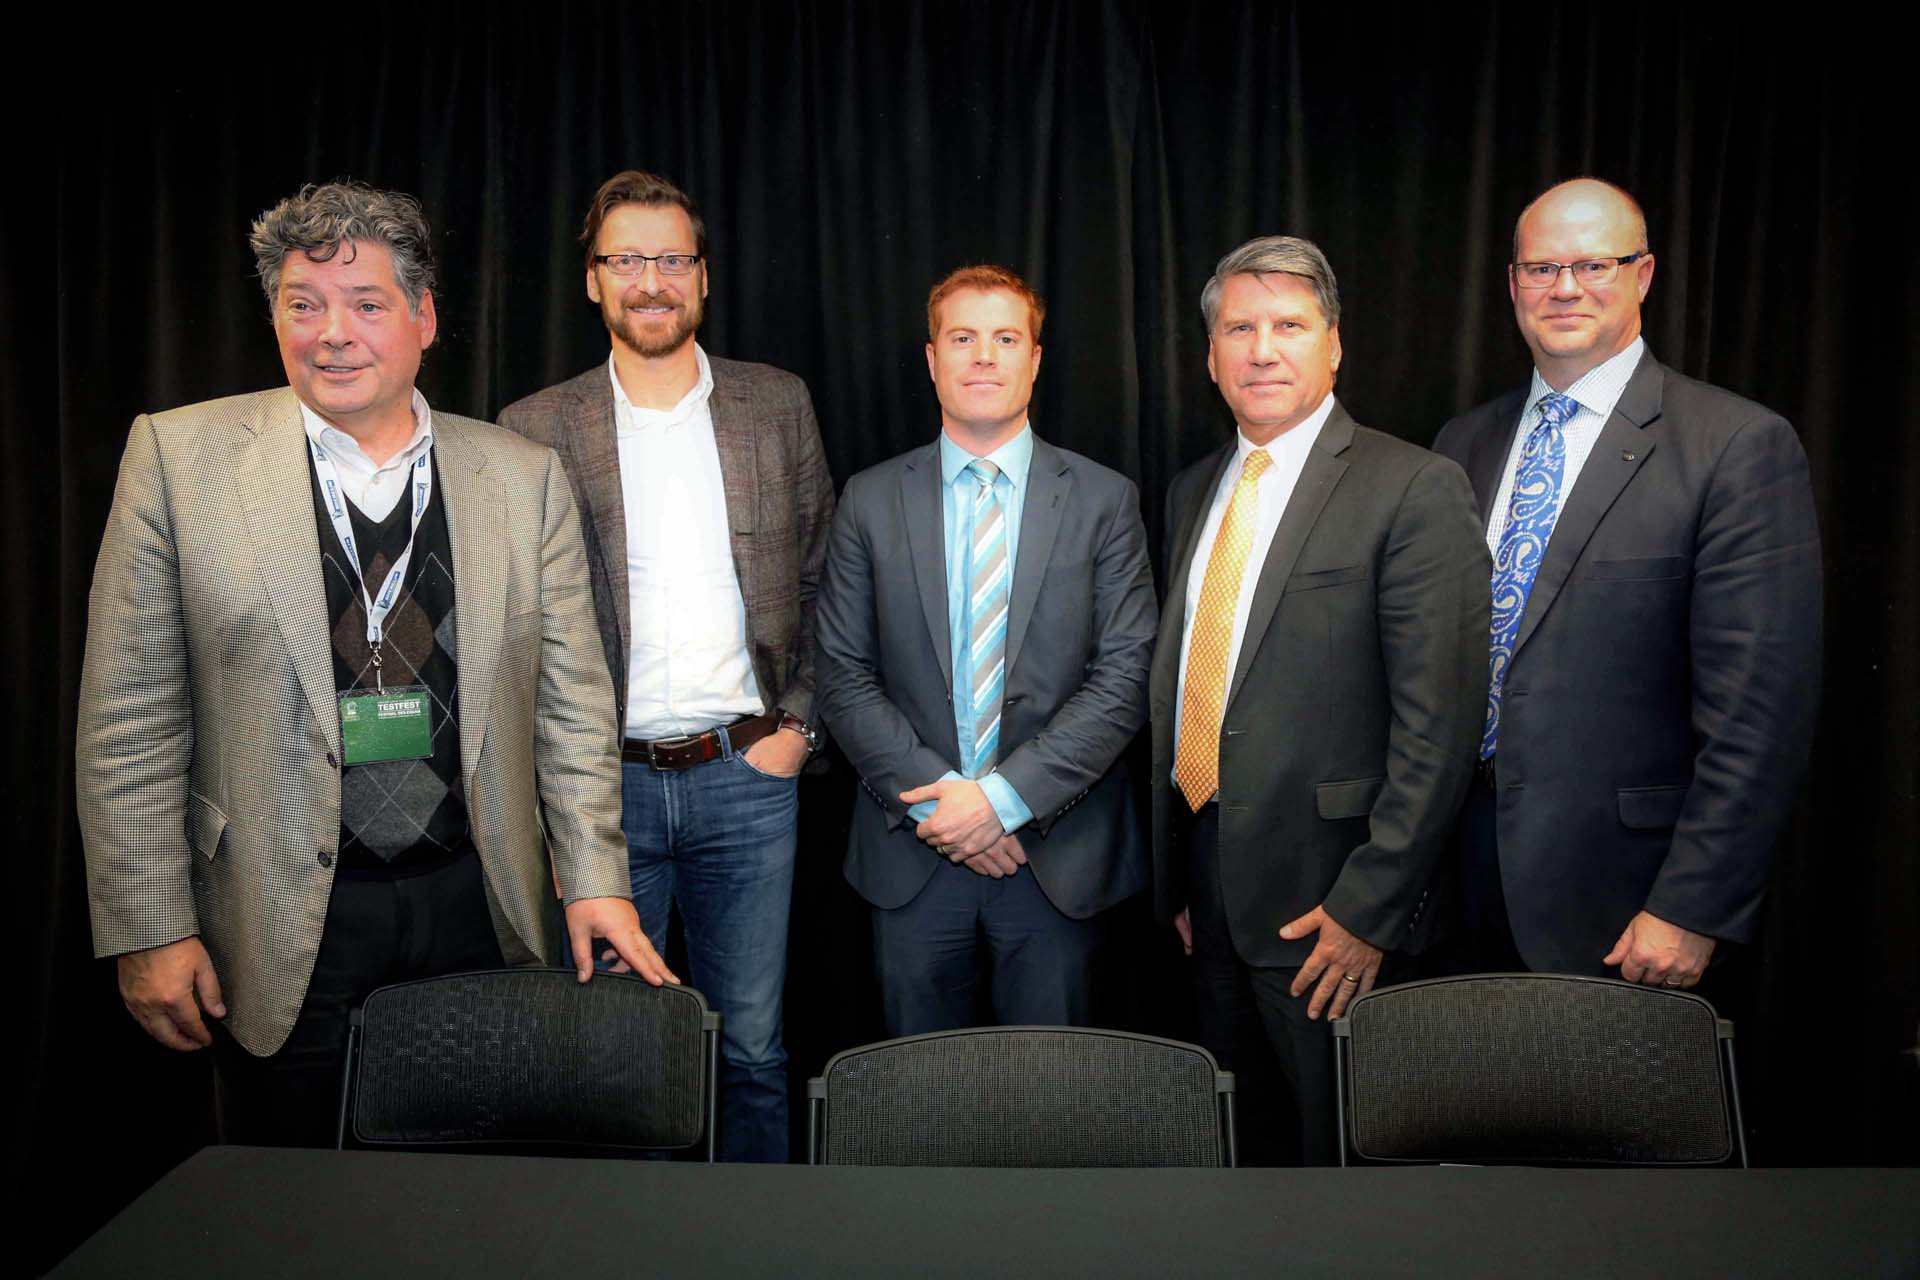 From left: David Paterson, Vice President of Corporate Affairs, General Motors of Canada; Wolfgang Hoffmann, President, Jaguar Land Rover Canada; François Lefèvre, Chief Marketing Manager – Nissan Leaf, Nissan Canada; Don Romano, President and CEO, Hyundai Canada; Ted Lancaster, Vice-President and COO, Kia Canada